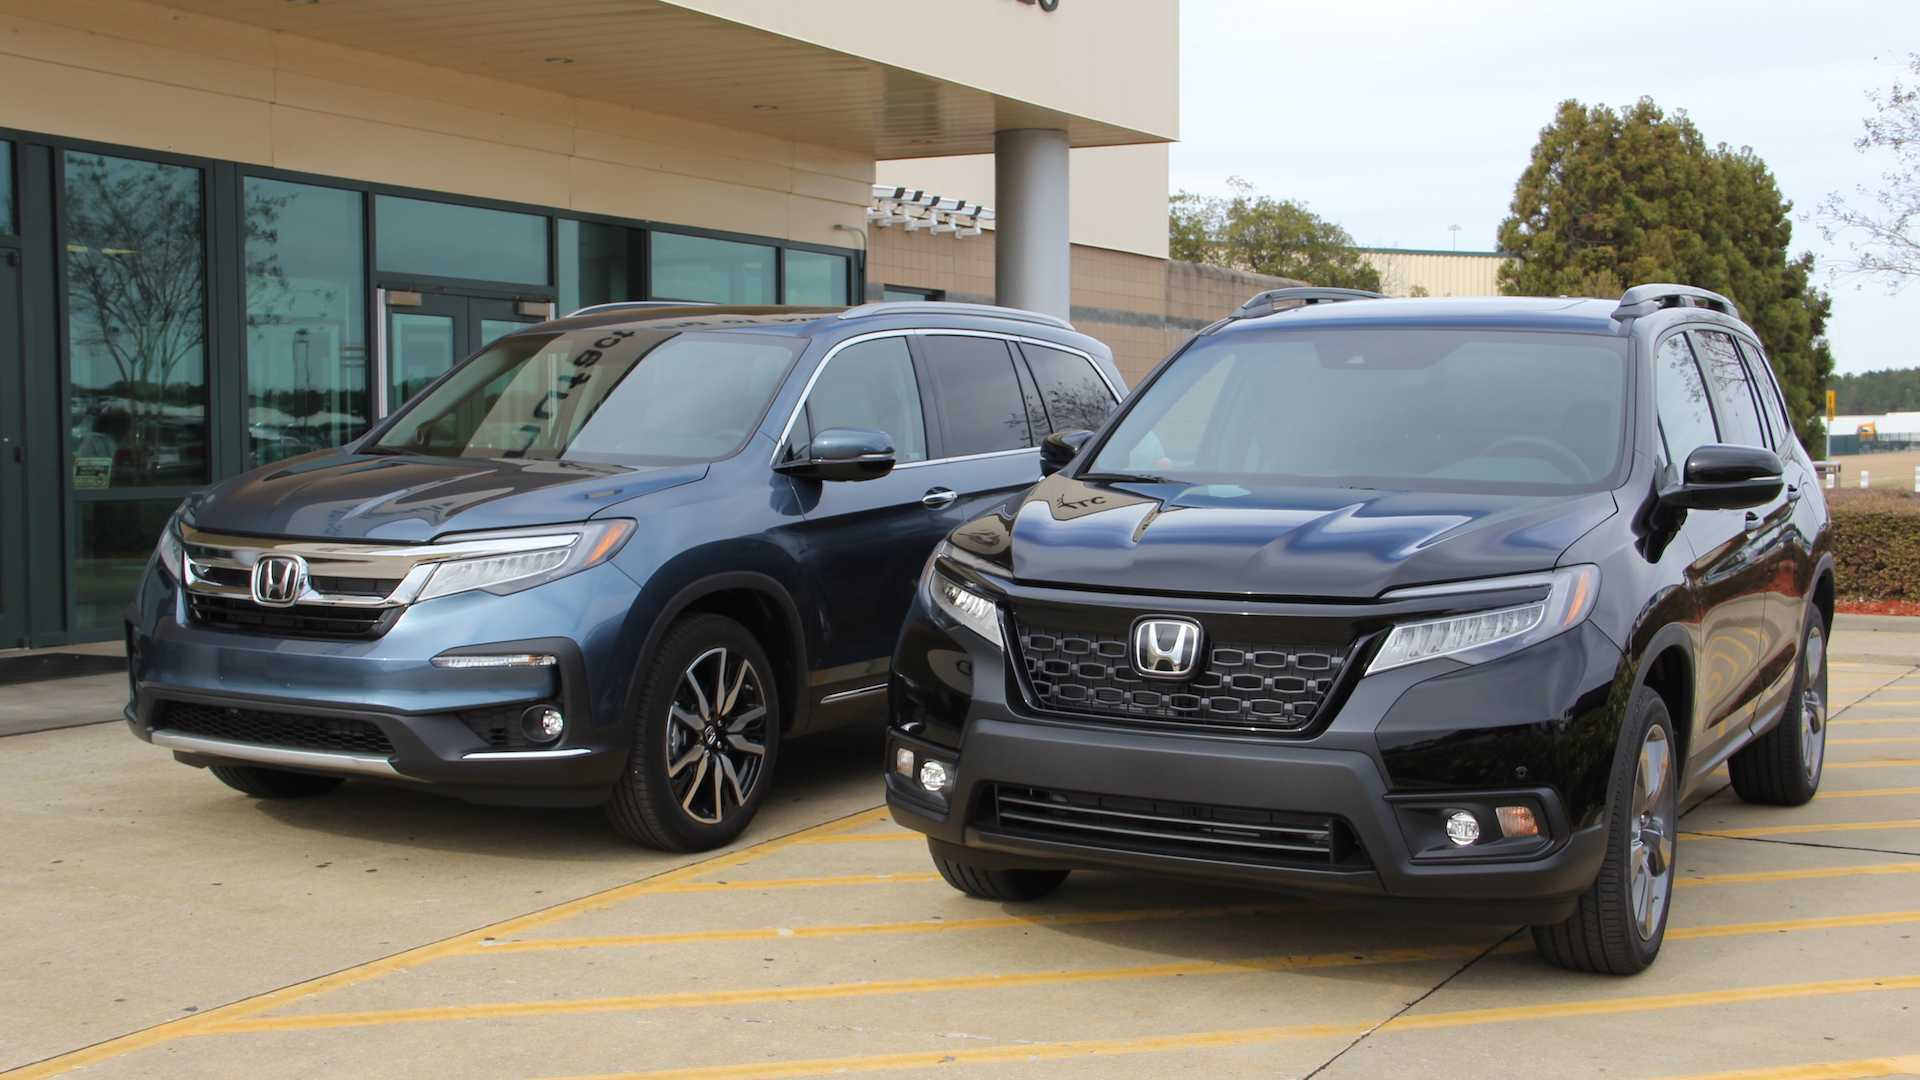 2019-honda-passport-vs-2019-honda-pilot-so-sanh-1.jpg